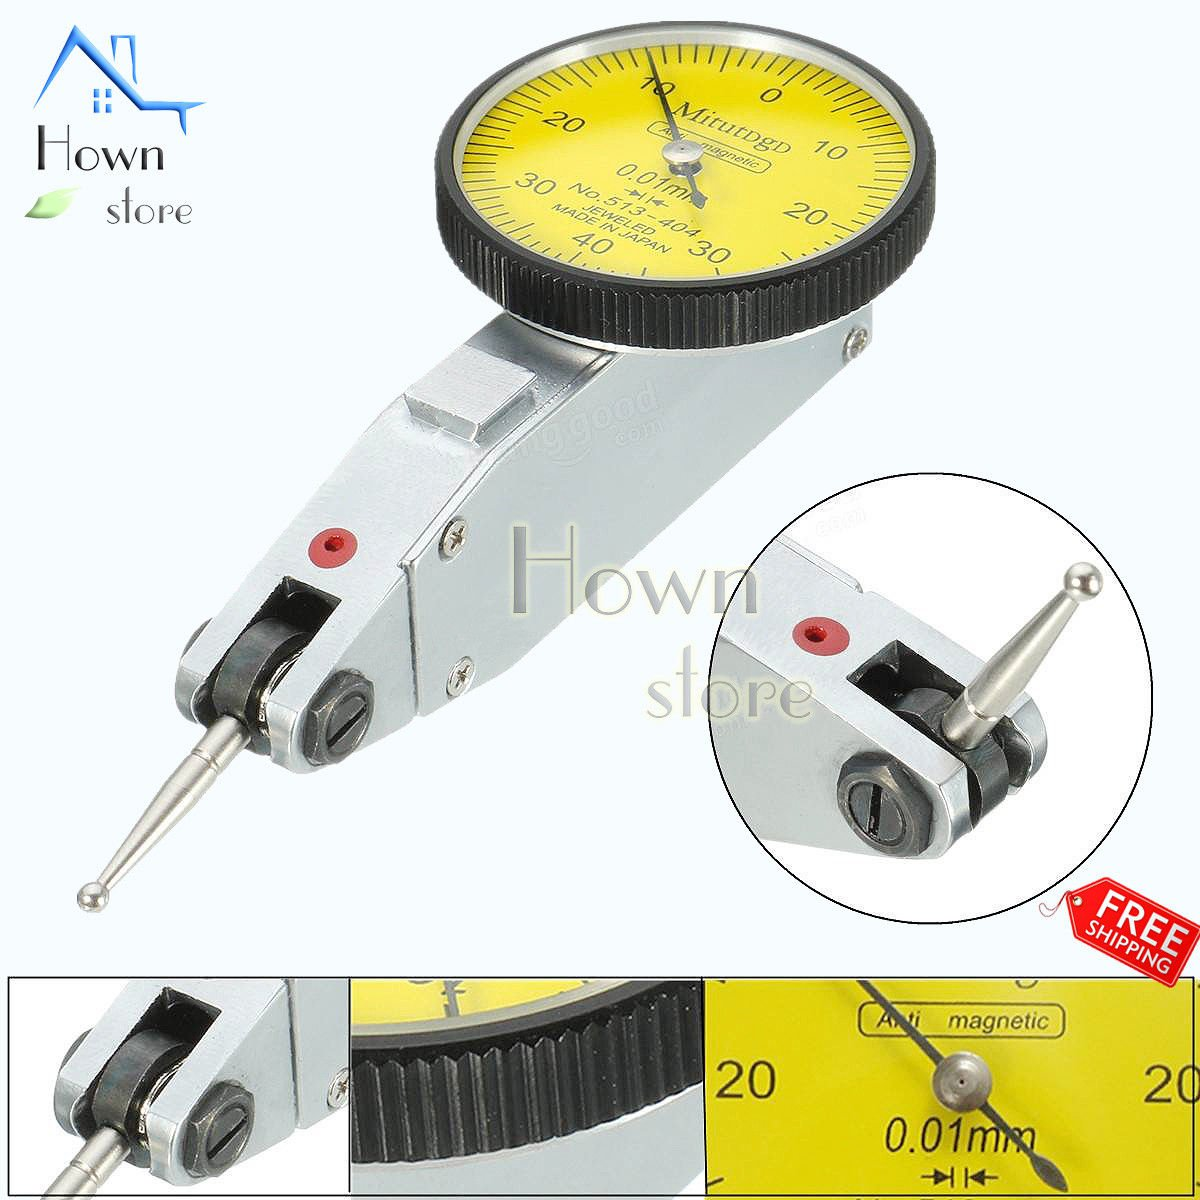 Test Indicator Gauge Precision Metric Mechanical Measurement Clamps and Box